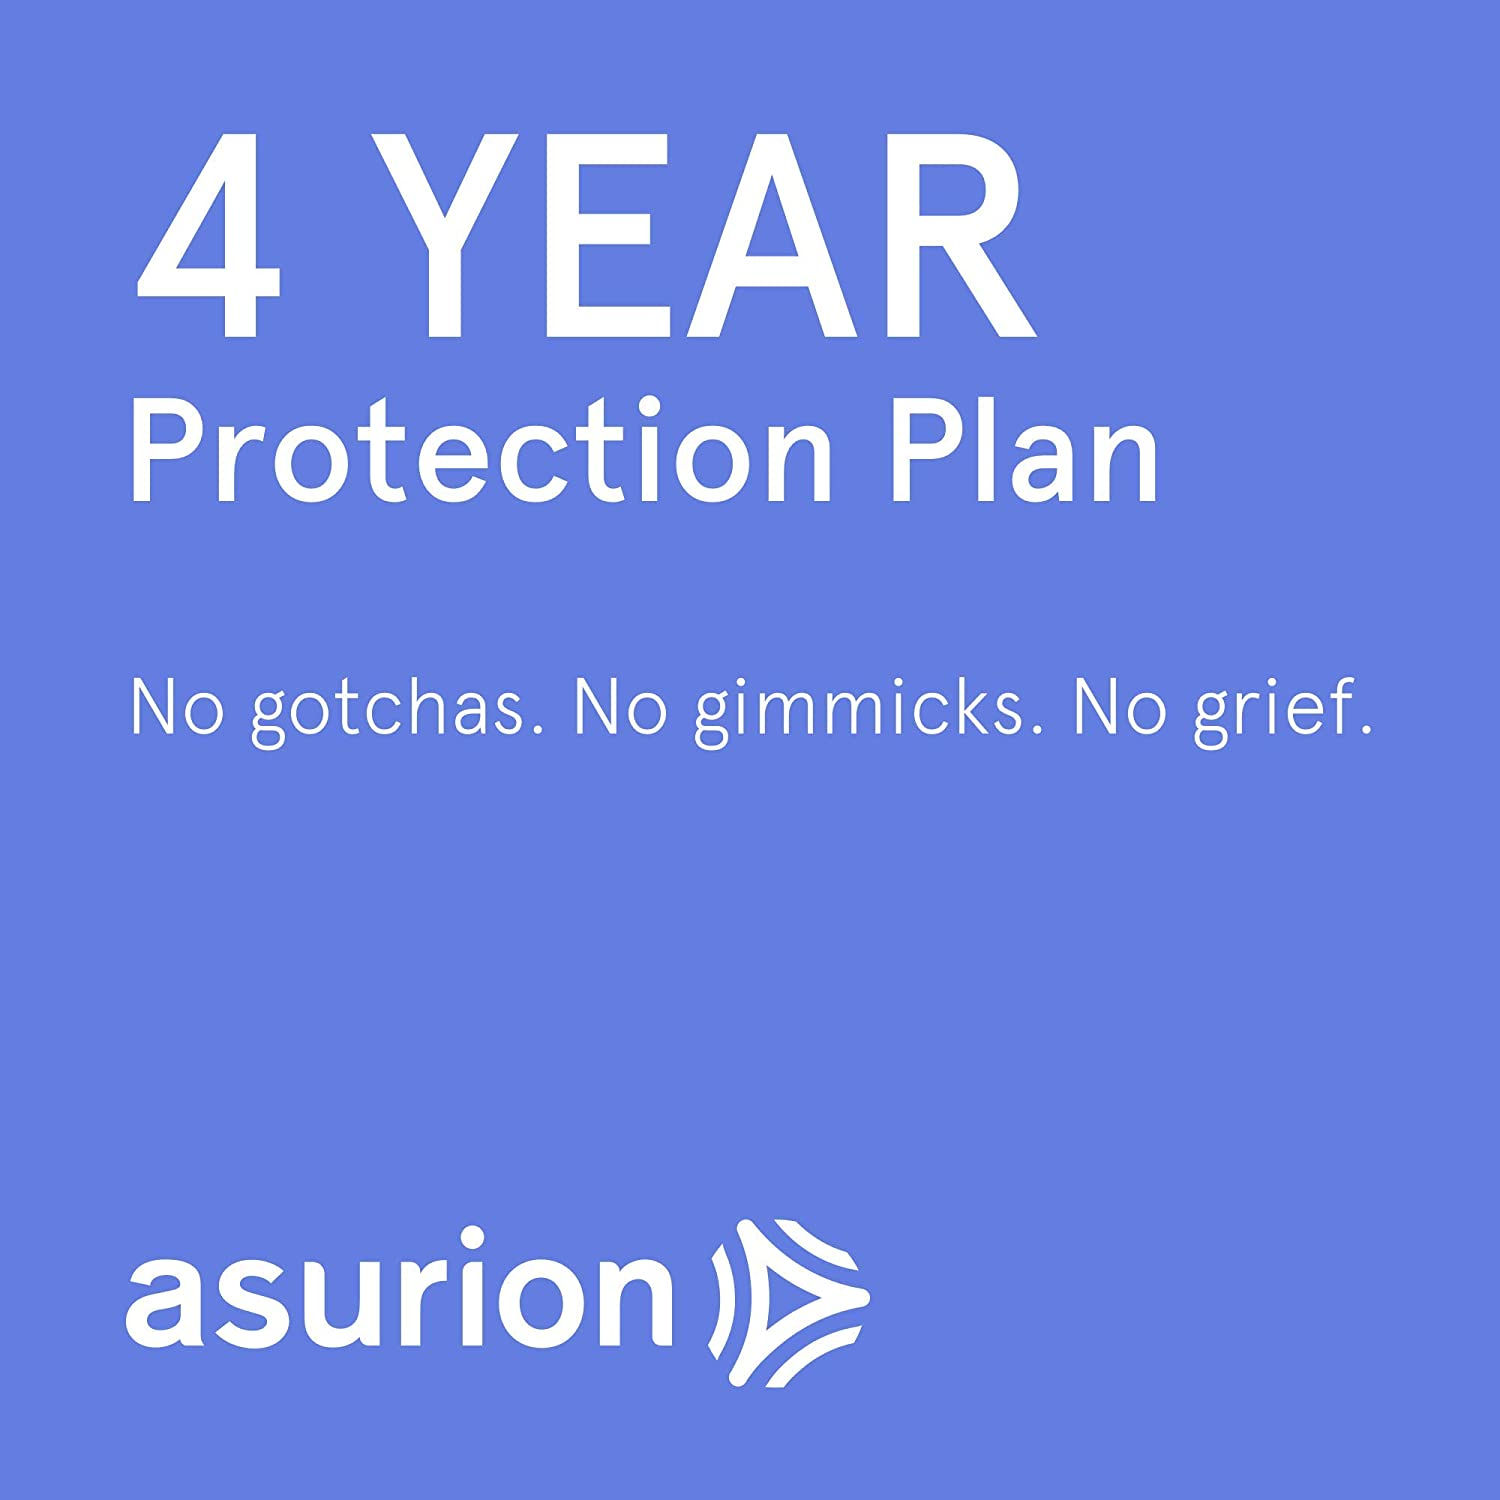 ASURION 4 Year Kitchen Protection Plan $100-124.99